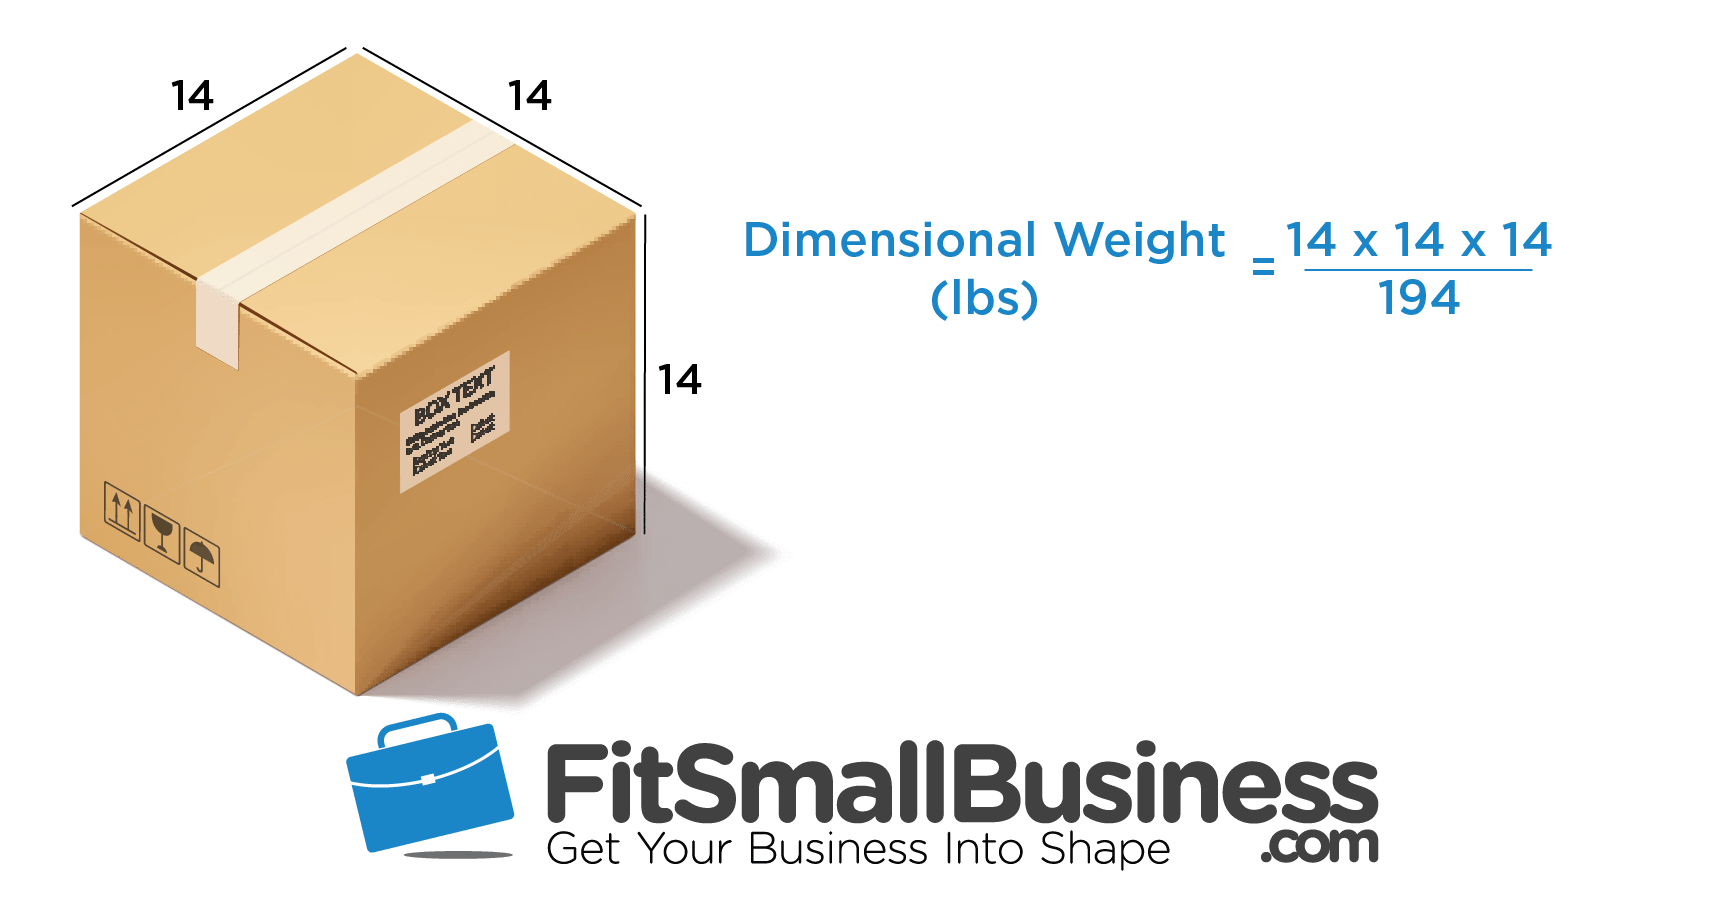 Dimensional Weight Calculator - USPS 14 in box